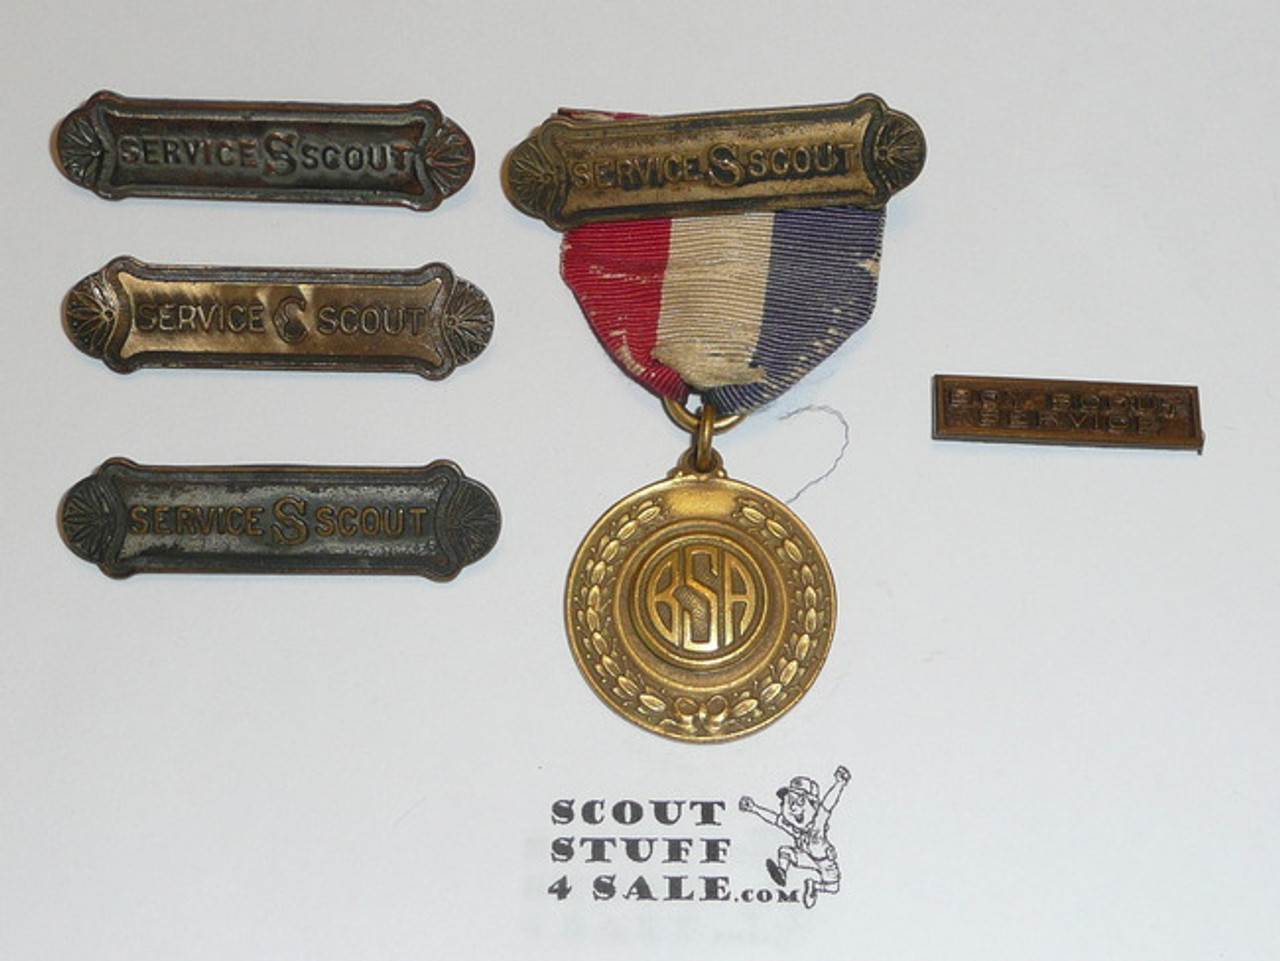 Collection of Los Angeles Area Council Civic Service Scout Medals, Gold, Silver, and Bronze Bars, Medal Plus